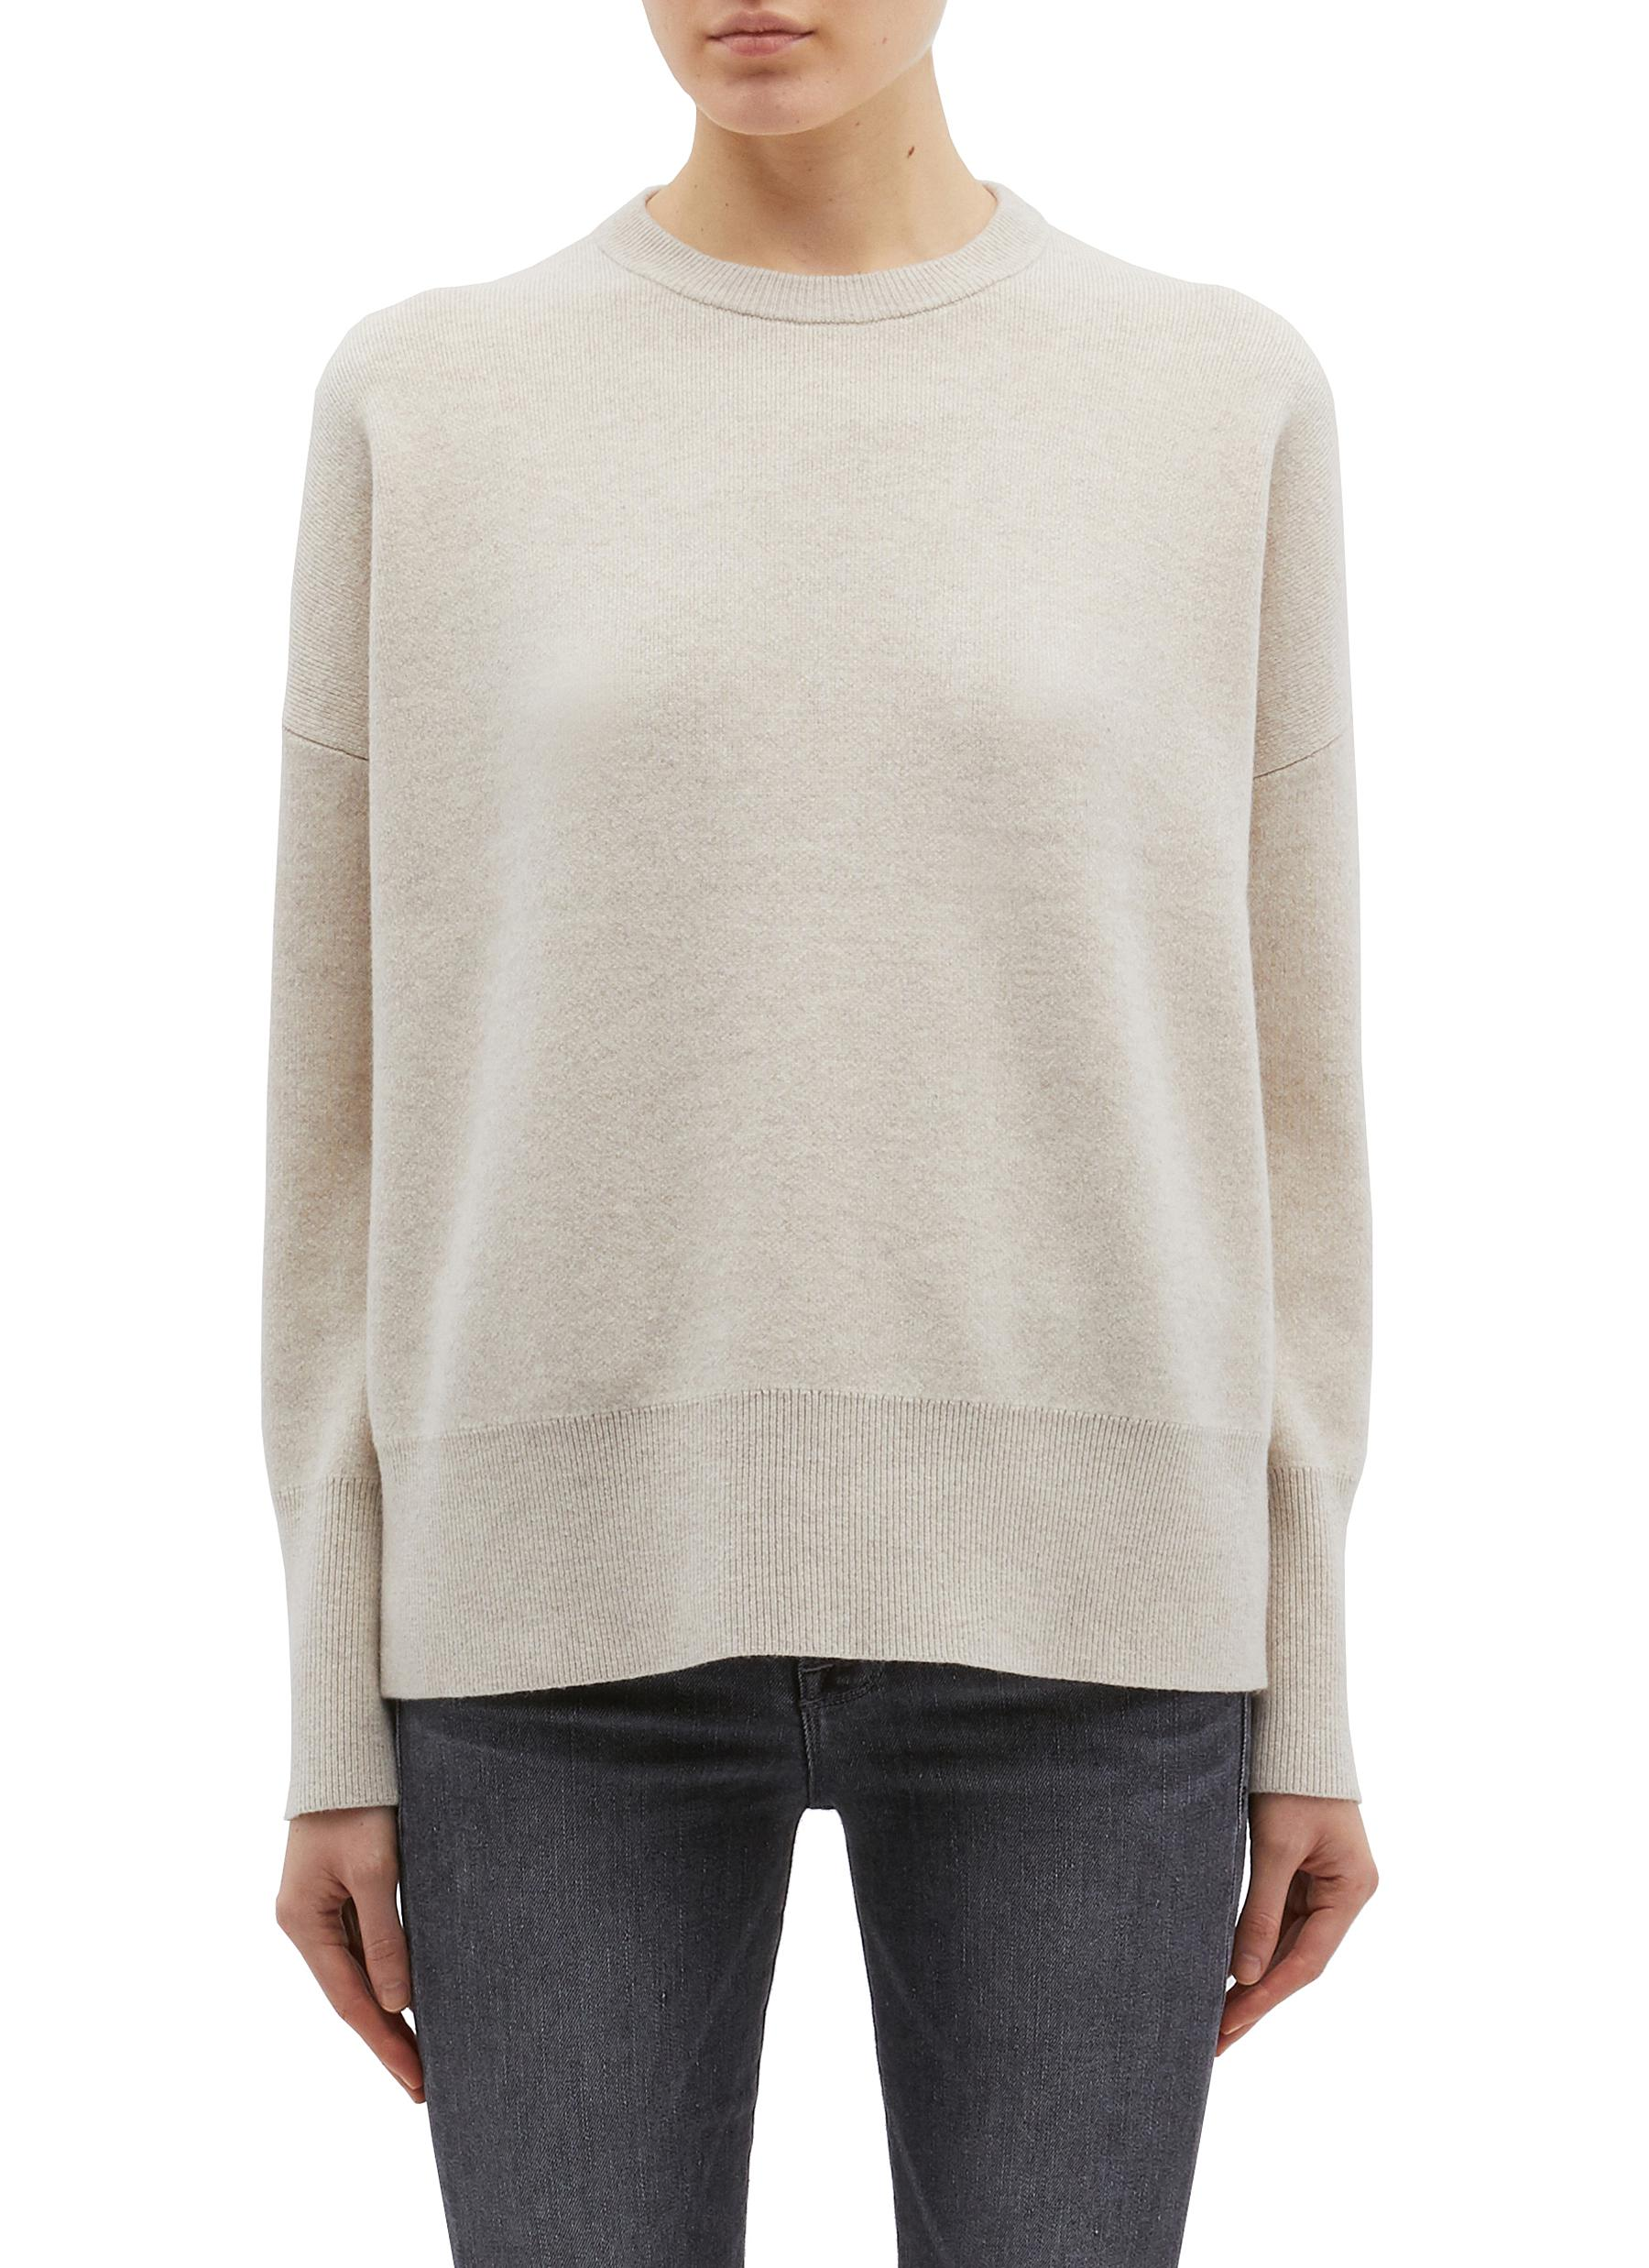 Buy Theory Knitwear 'Charmant' wool blend sweater